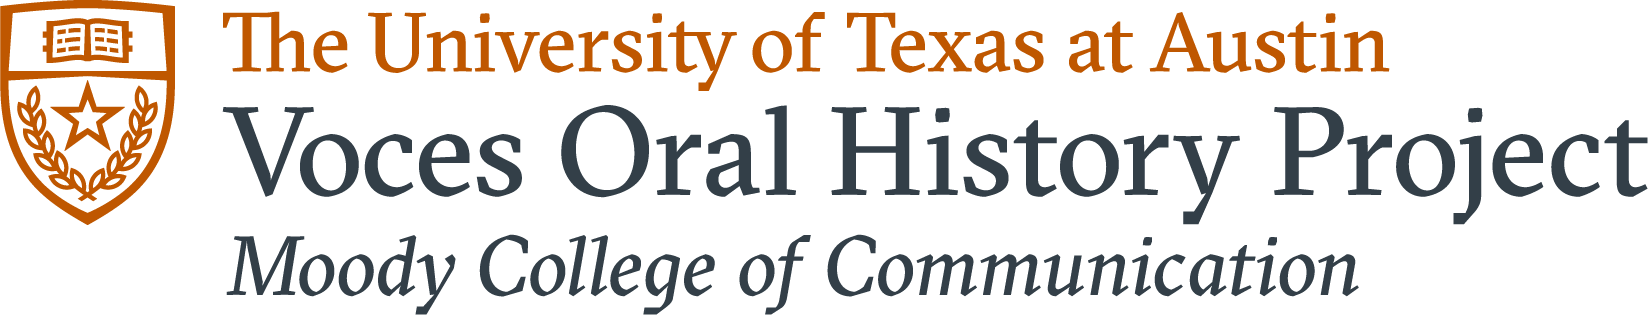 Voces Oral History Project UT Logo